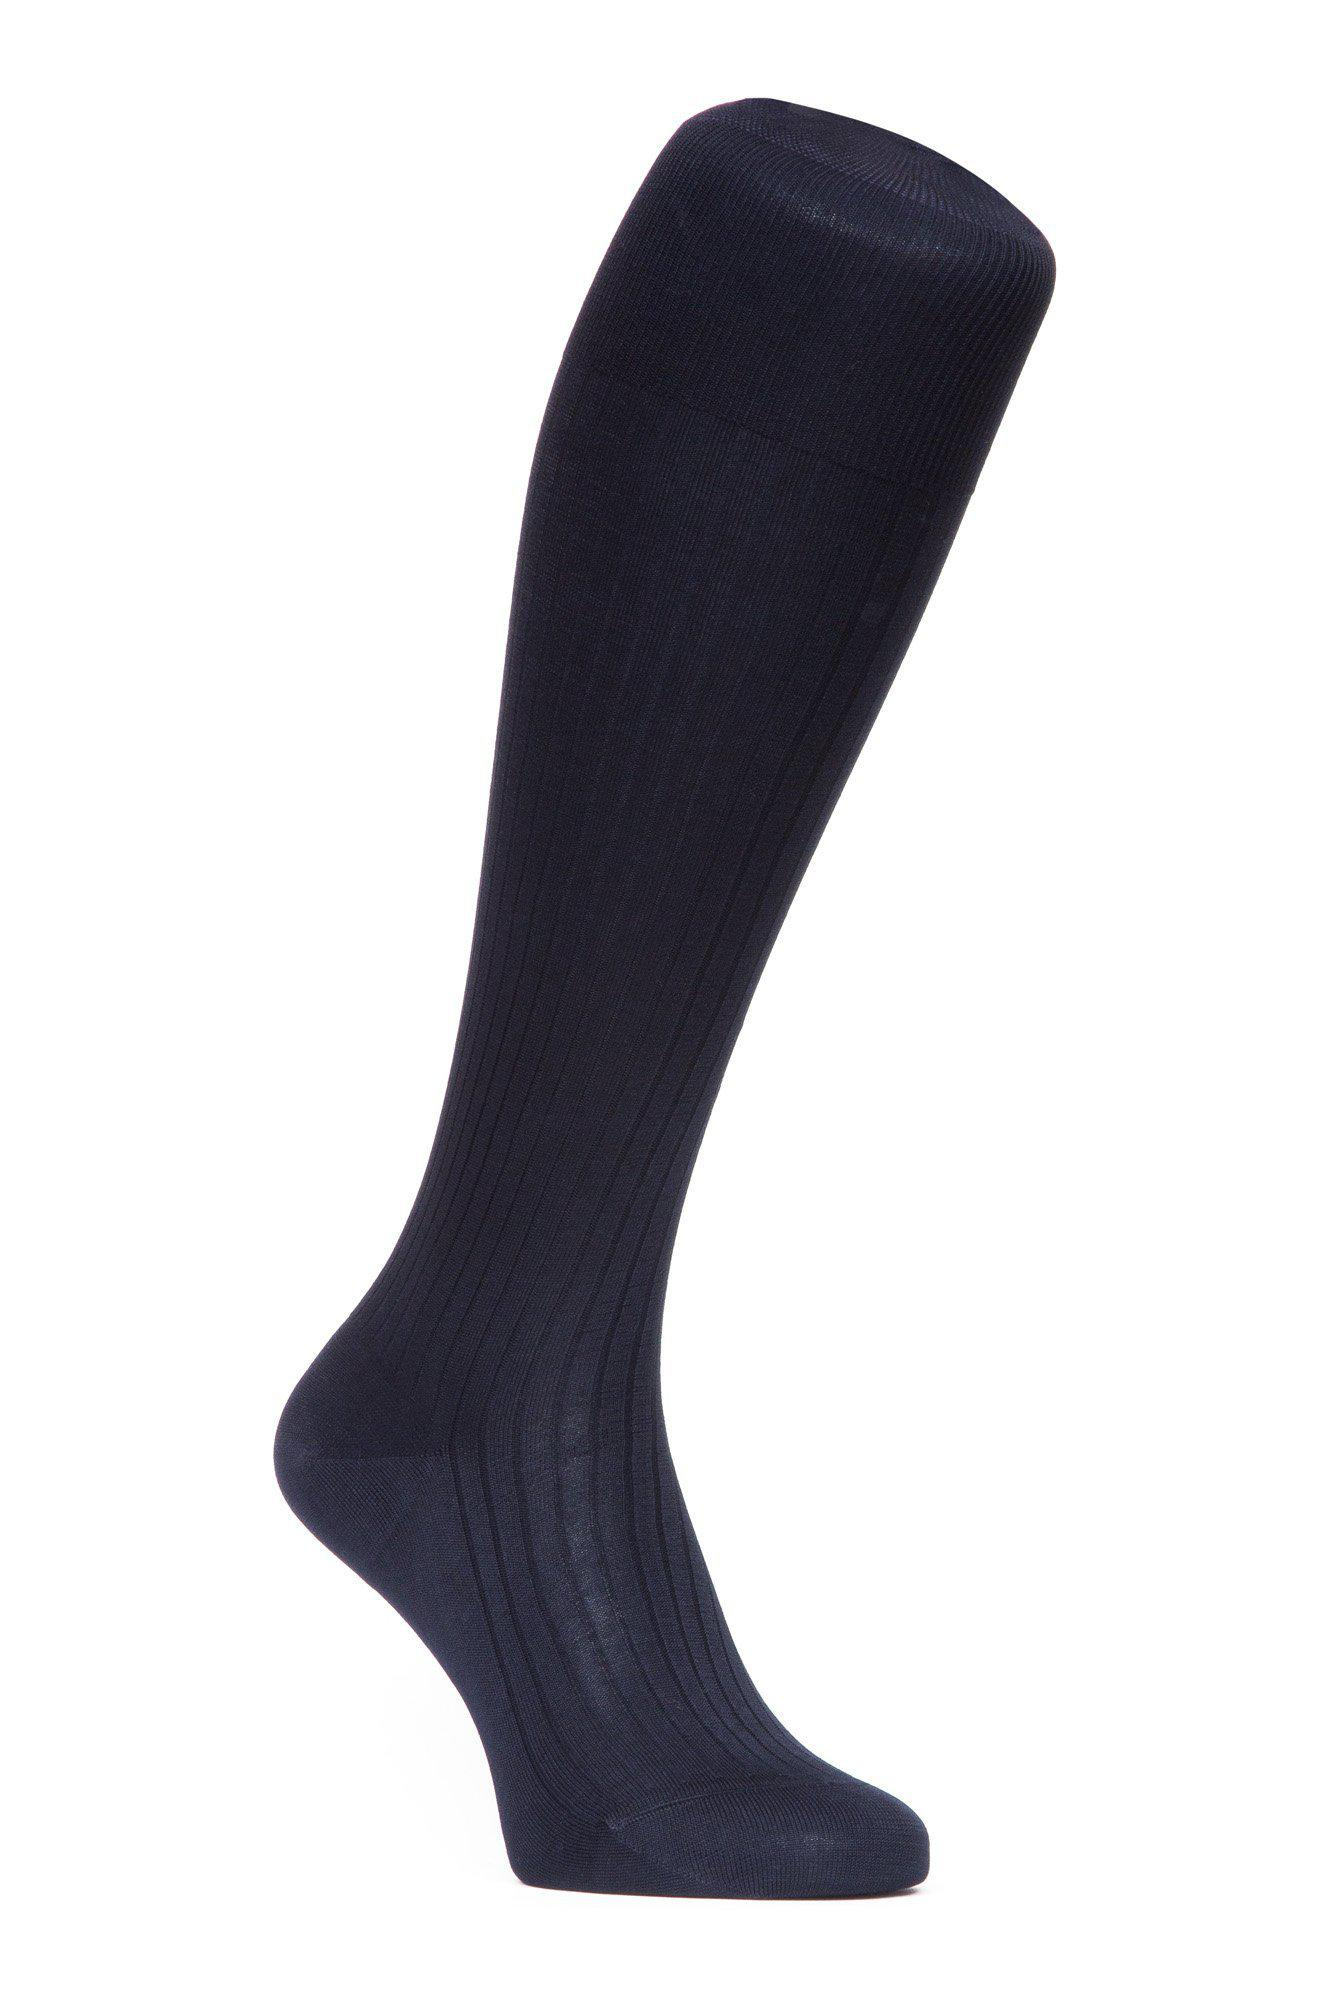 J.FitzPatrick Footwear - Egyptian Cotton Lisle Knee-High Socks - Navy